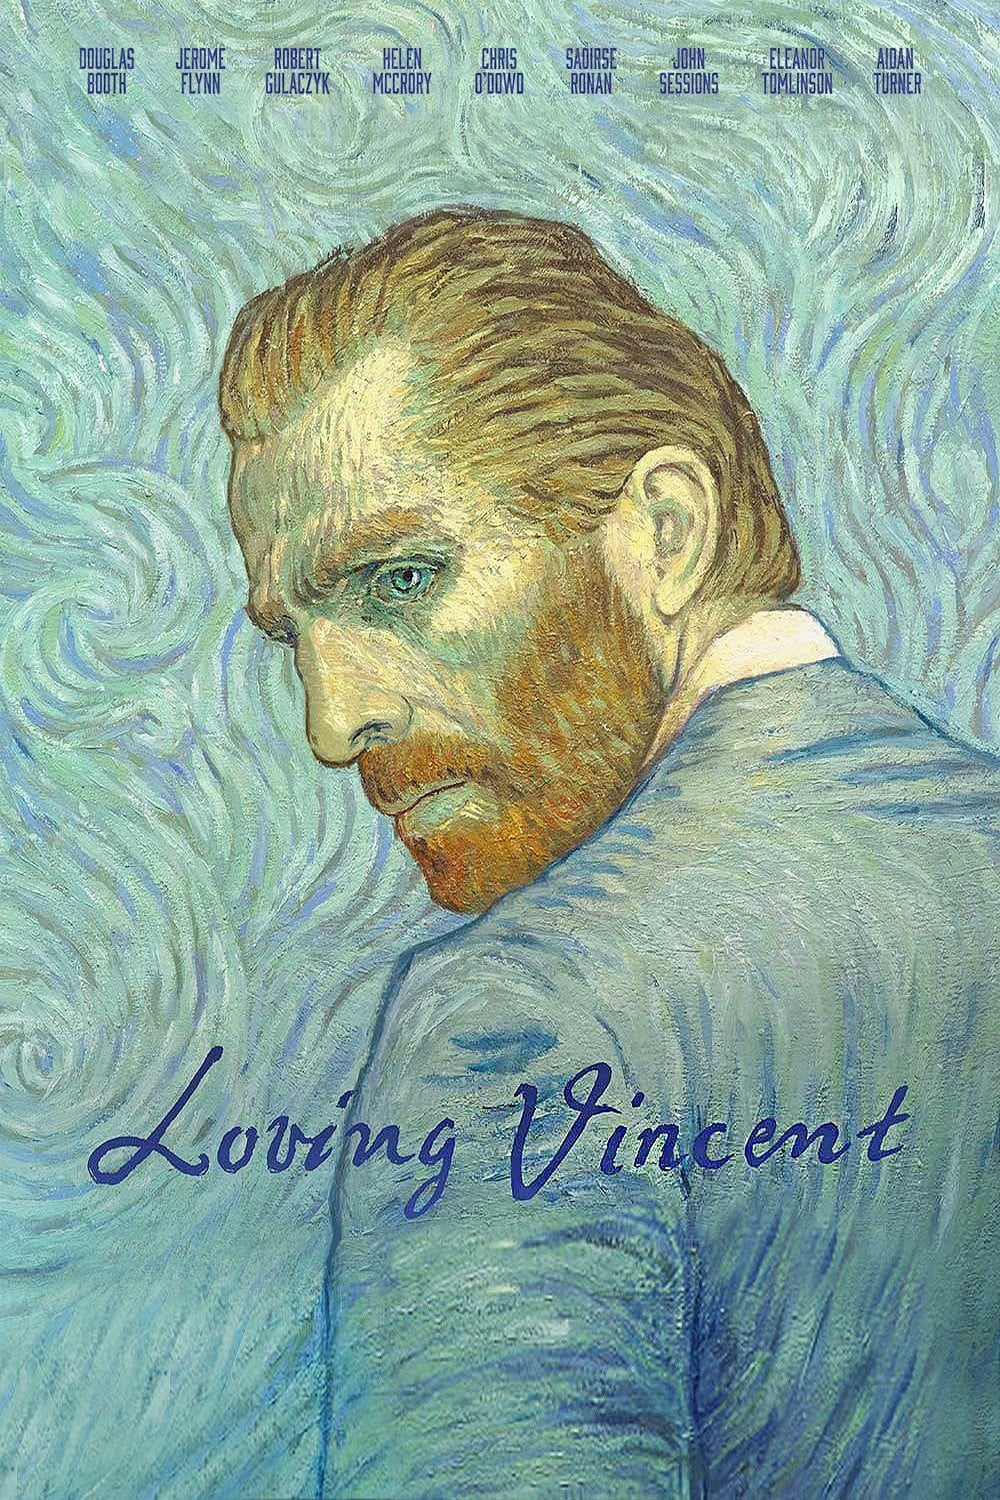 Com Amor, Van Gogh Torrent (2018) Dual Áudio Dublado BluRay 1080p Download